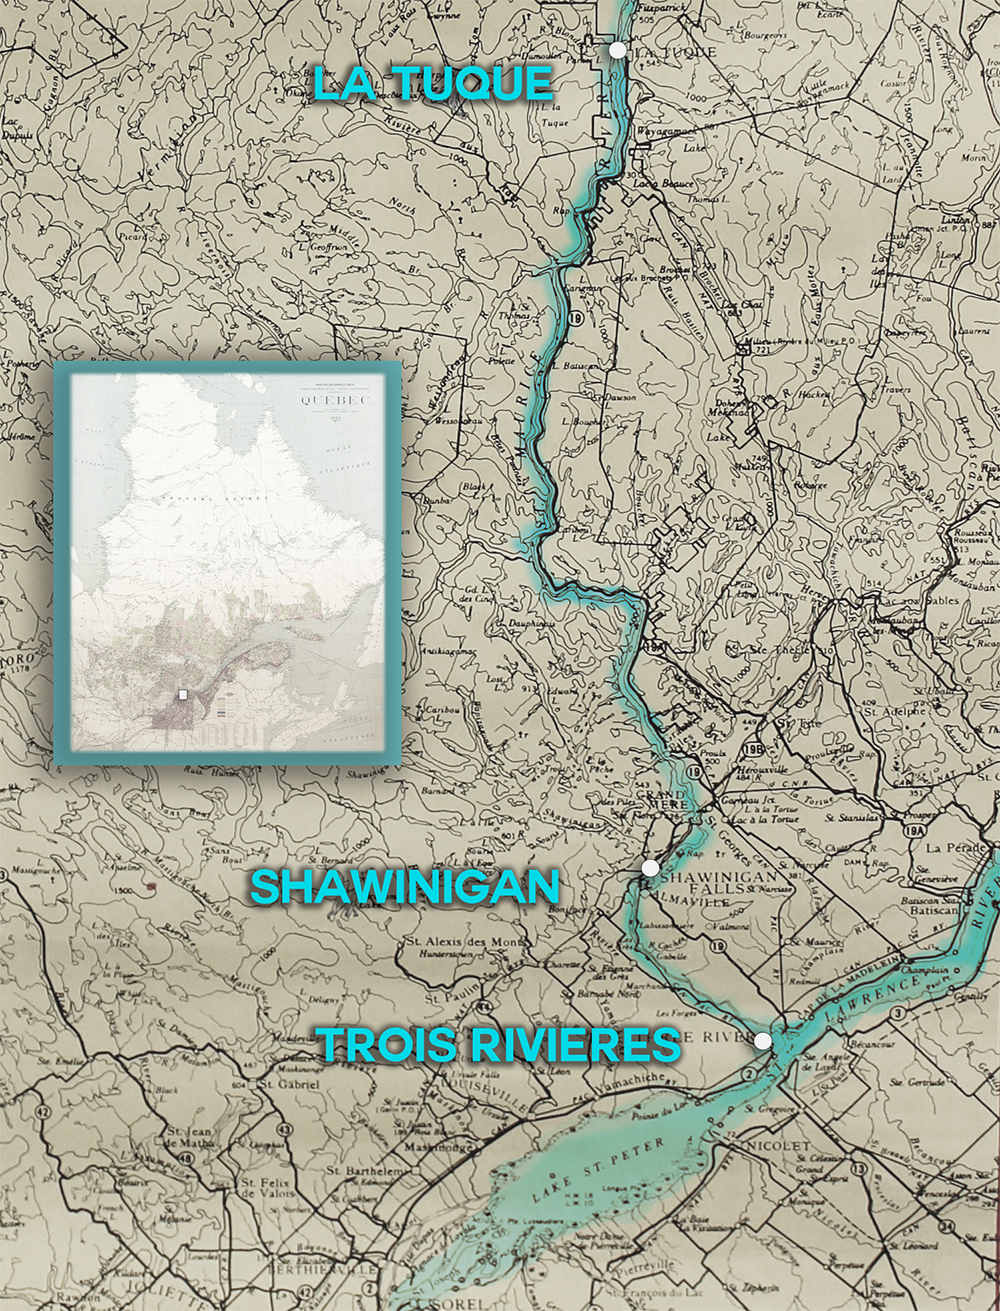 Map illustrating the long distance between La Tuque, Shawinigan, and Trois-Rivières, which is located at the confluence of the Sainte-Maurice and the St. Lawrence rivers.